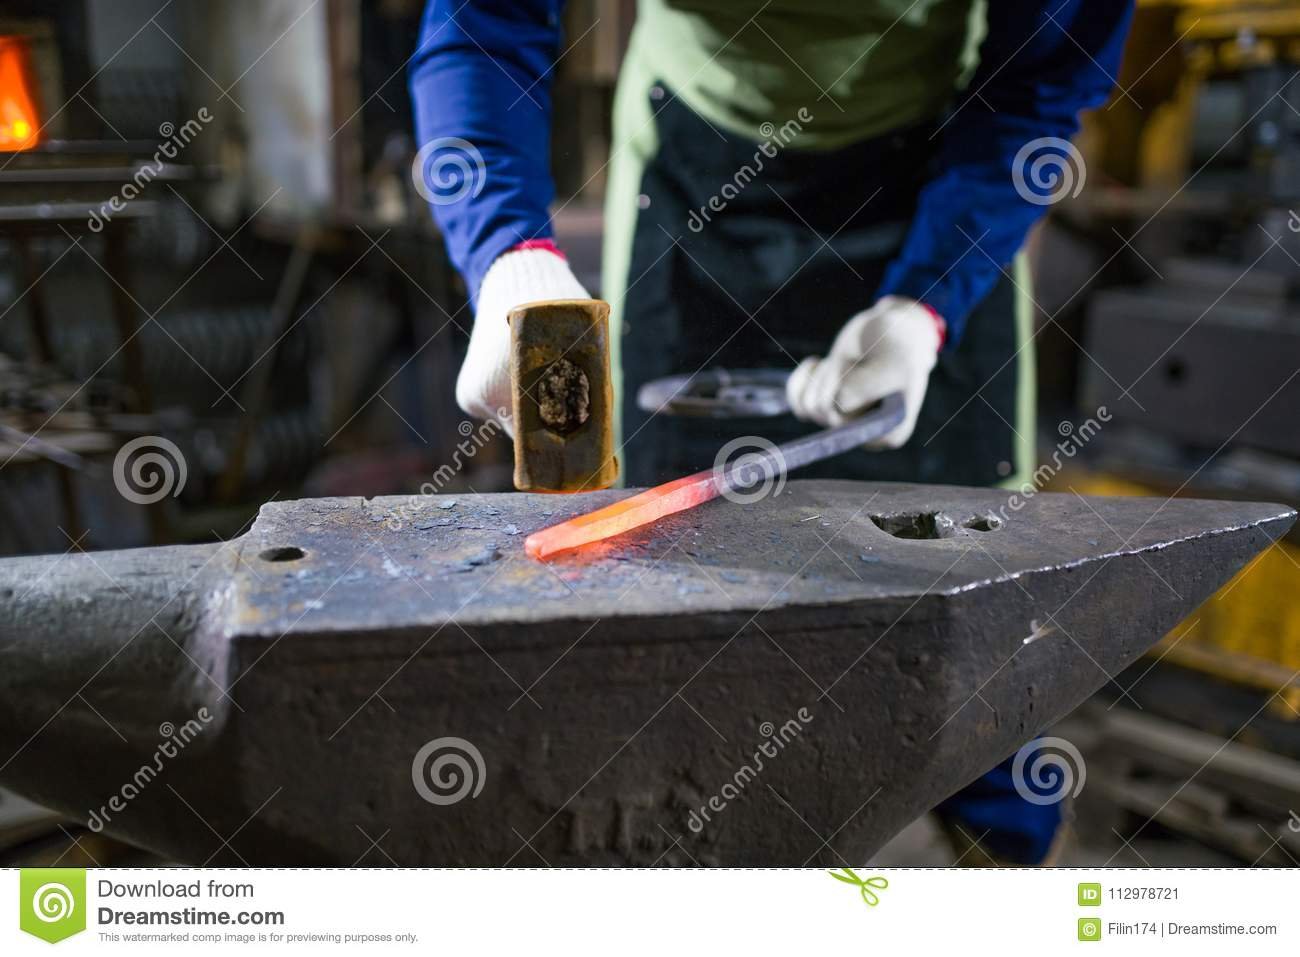 The blacksmith forges the luminous metal in the furnace, kicks out the sparks